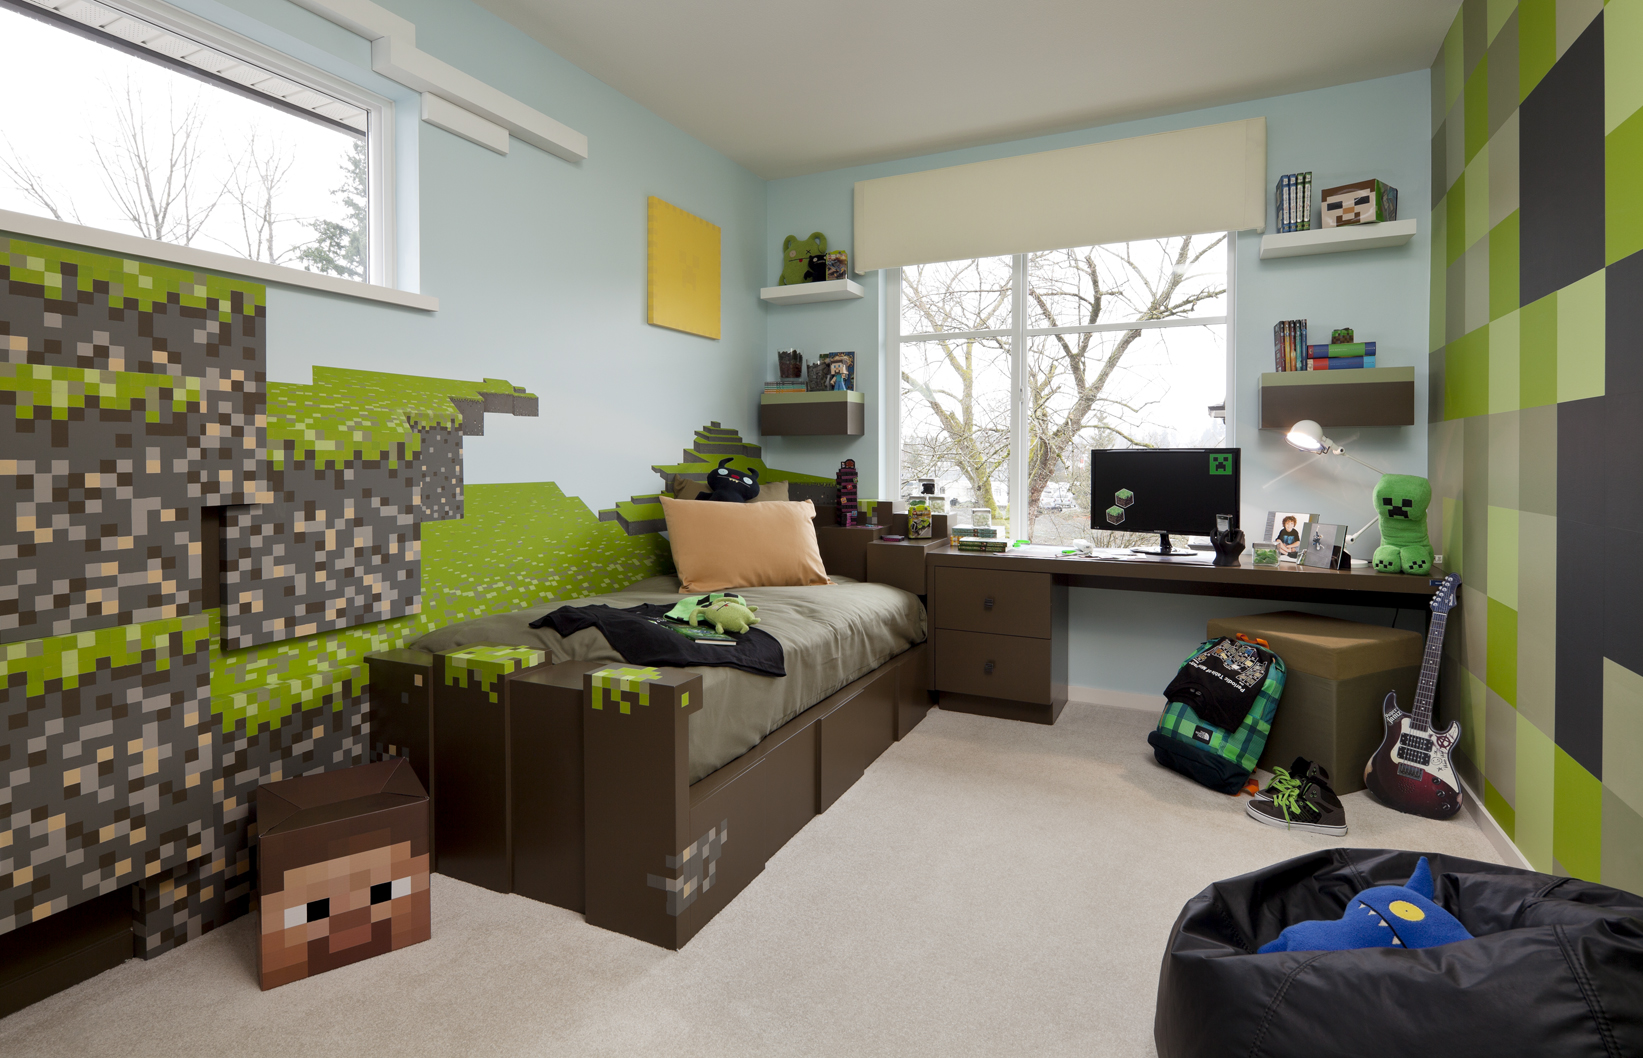 Amazing minecraft bedroom decor ideas moms approved - Minecraft home decor photos ...